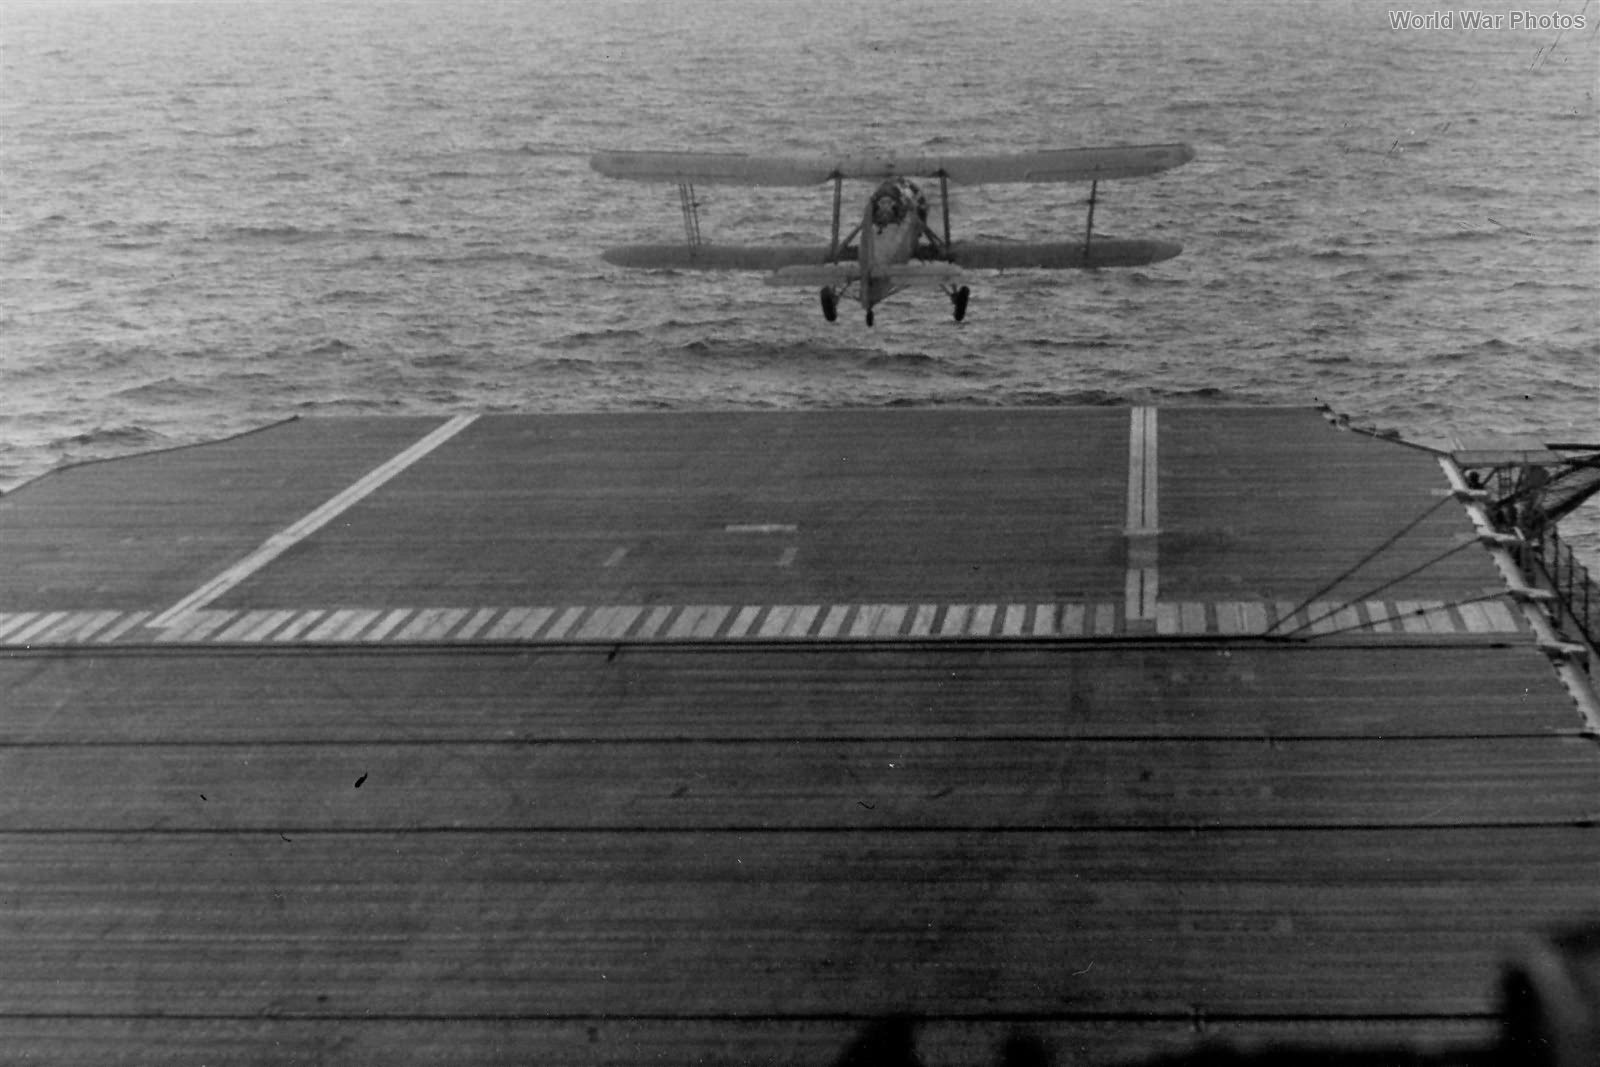 Swordfish 813 Squadron Takes Off From USS Wasp 1942 2